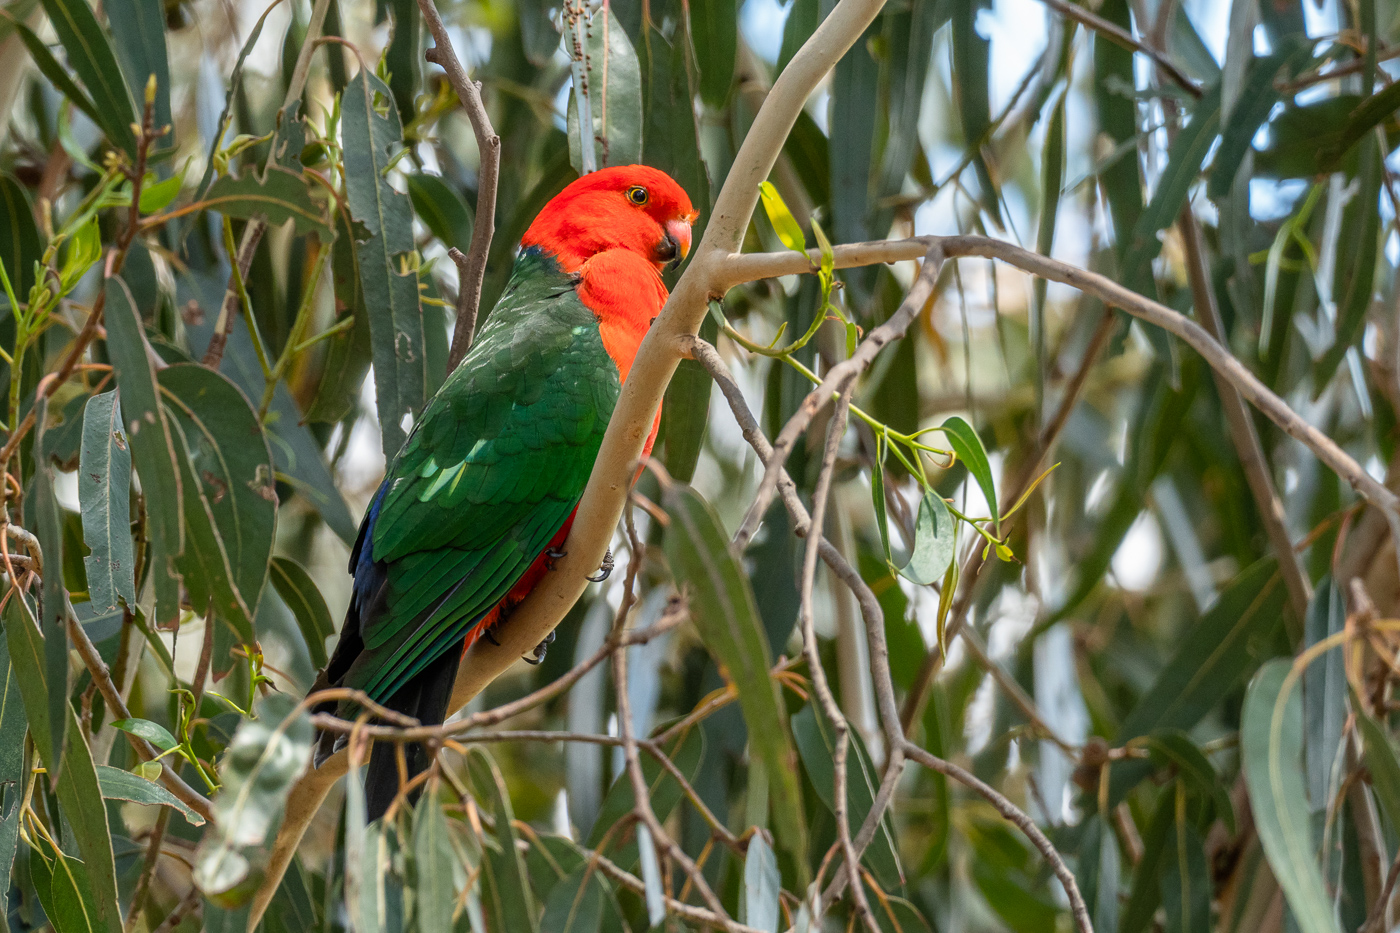 King Parrot - Bevan Hood